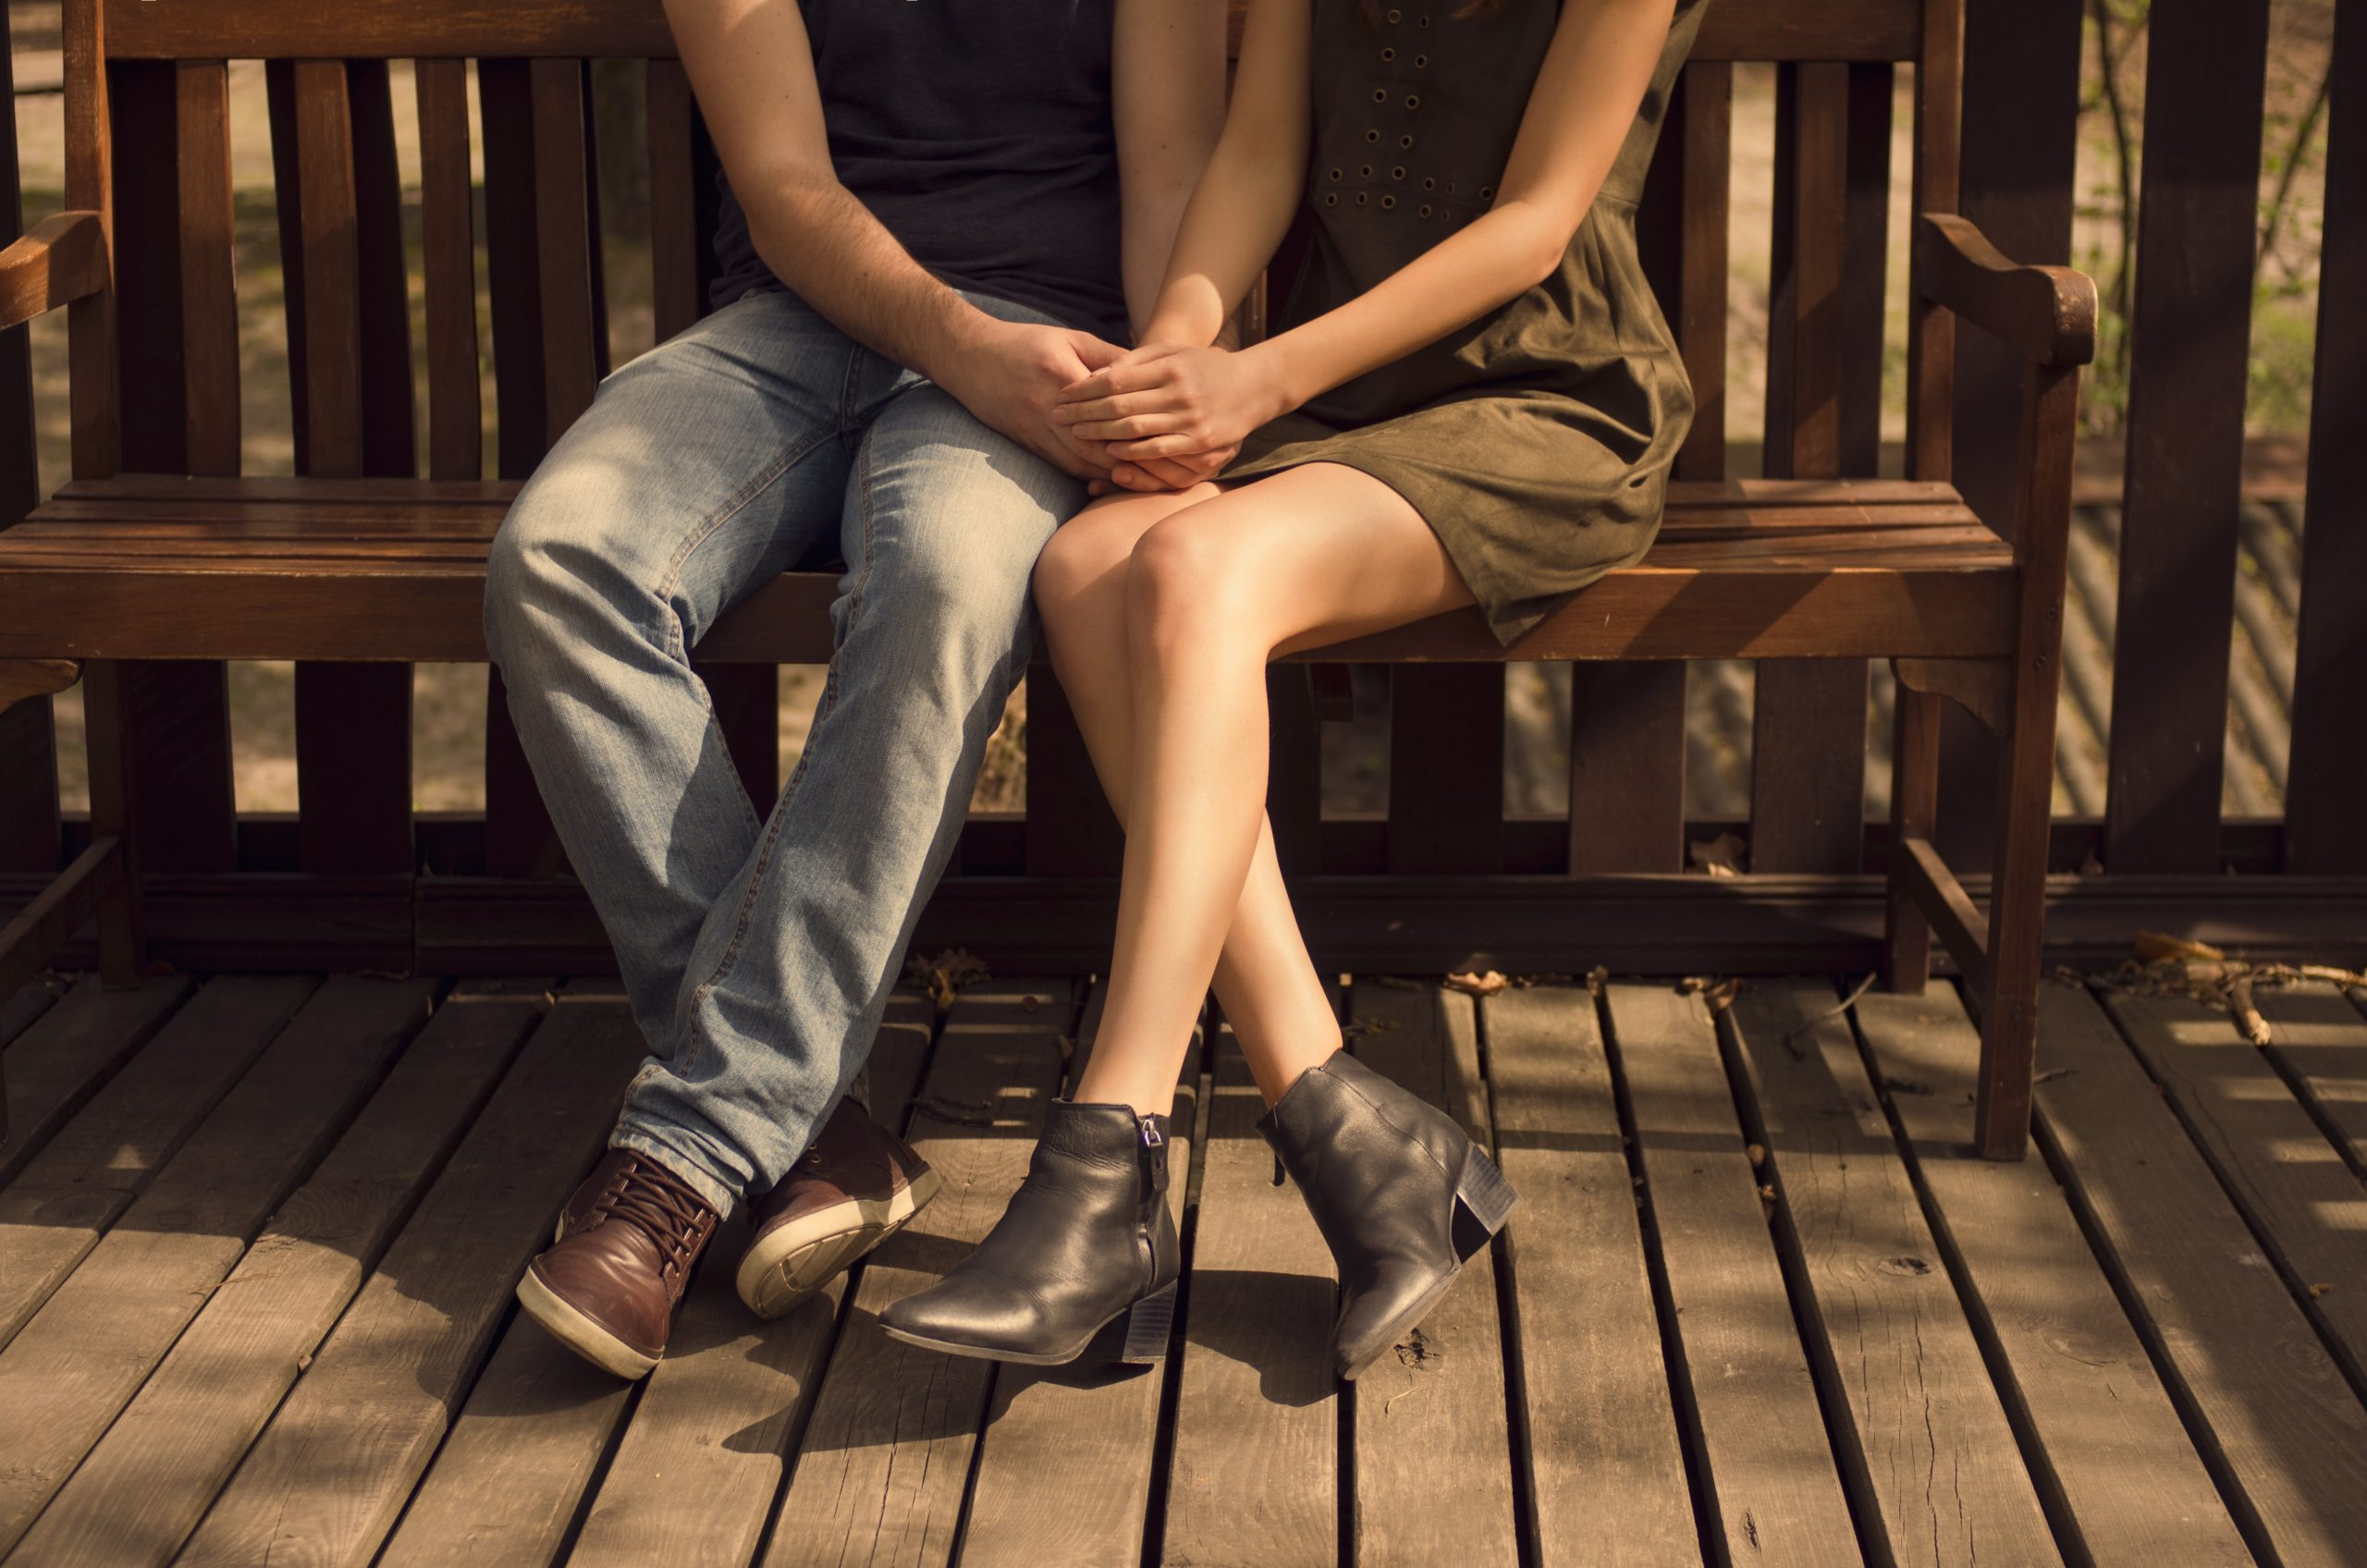 This picture shows a young couple holding hands while seated on a bench.